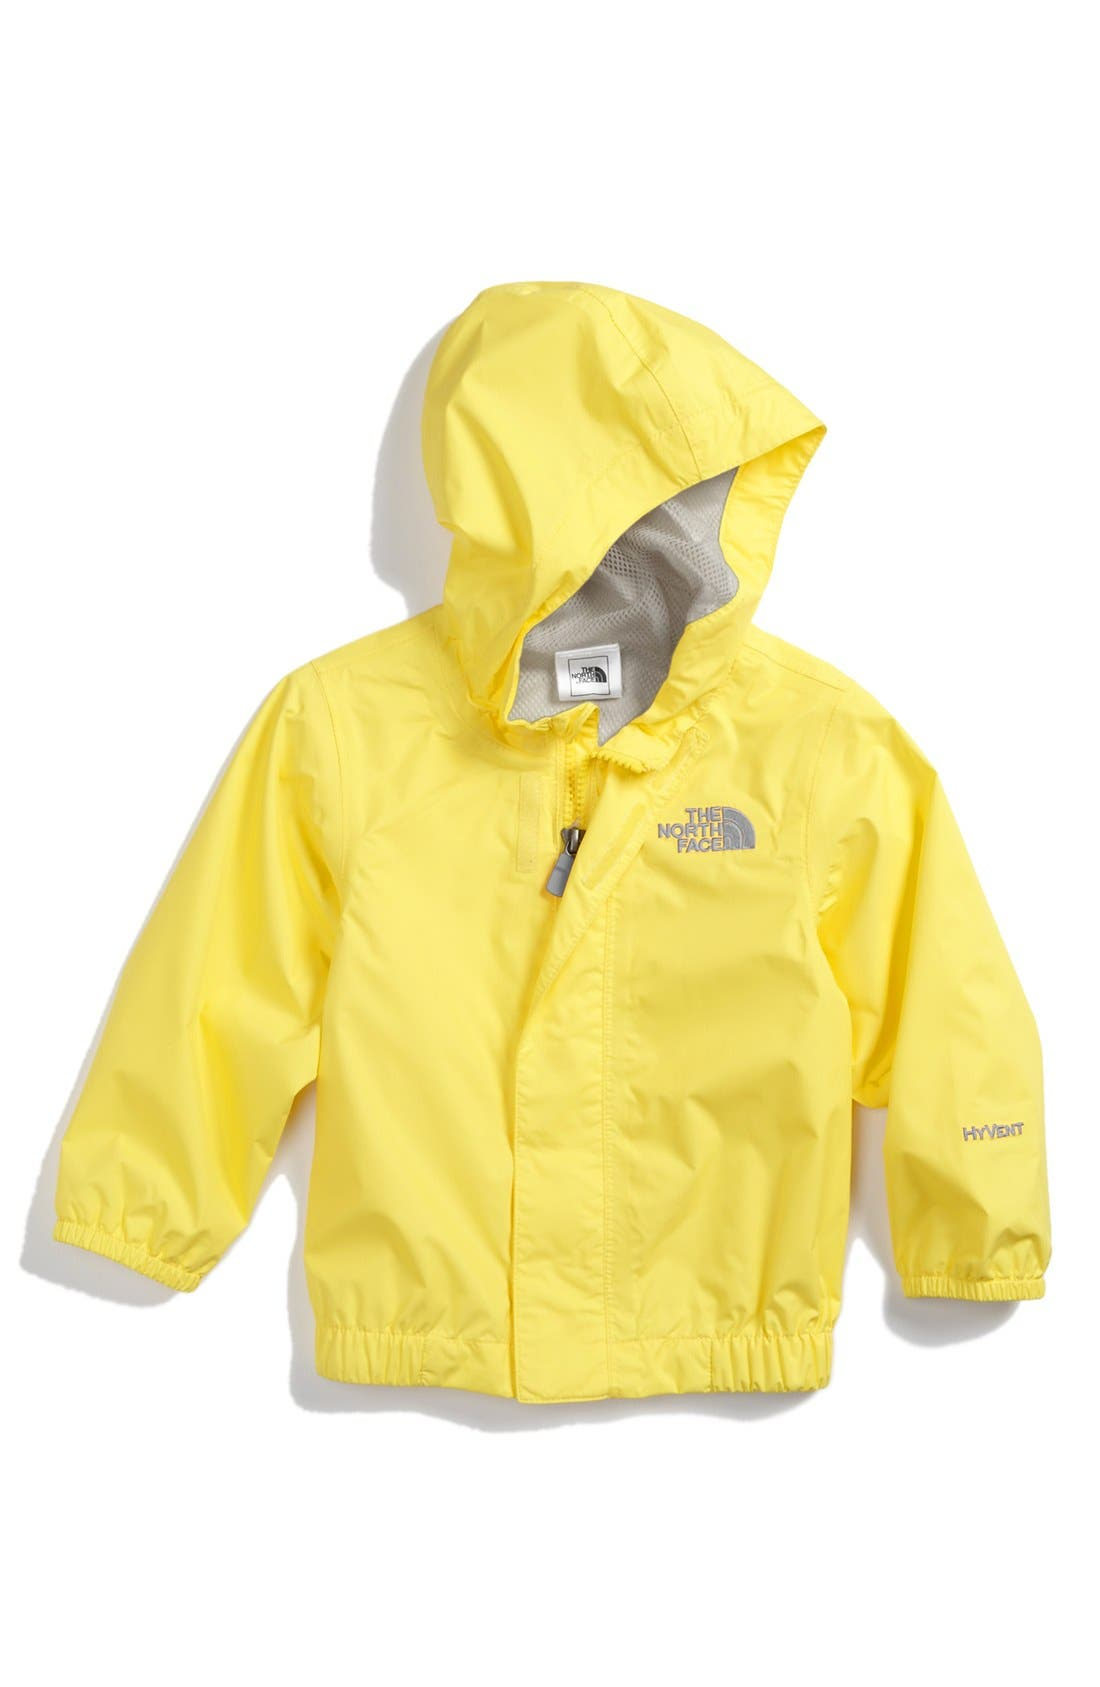 Main Image - The North Face 'Tailout' Rain Jacket (Toddler)